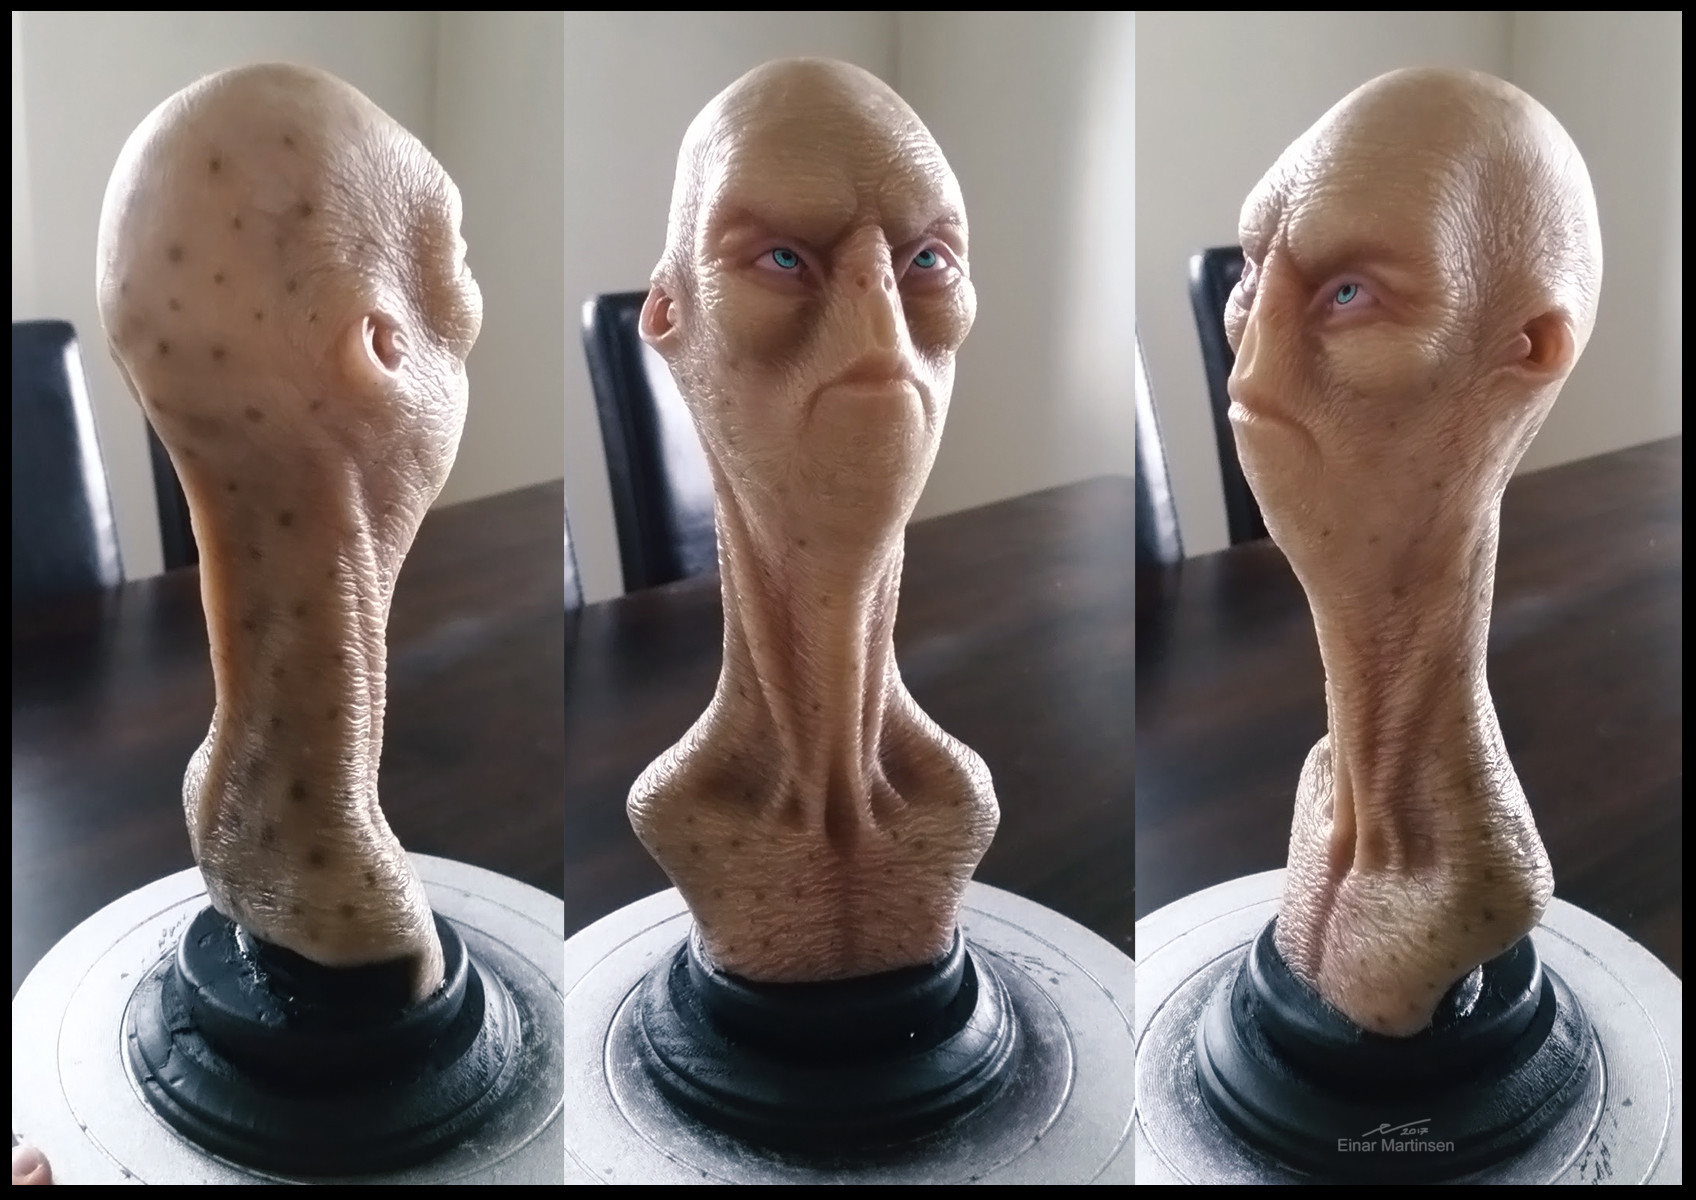 Einar martinsen traditionalsculpture alien em